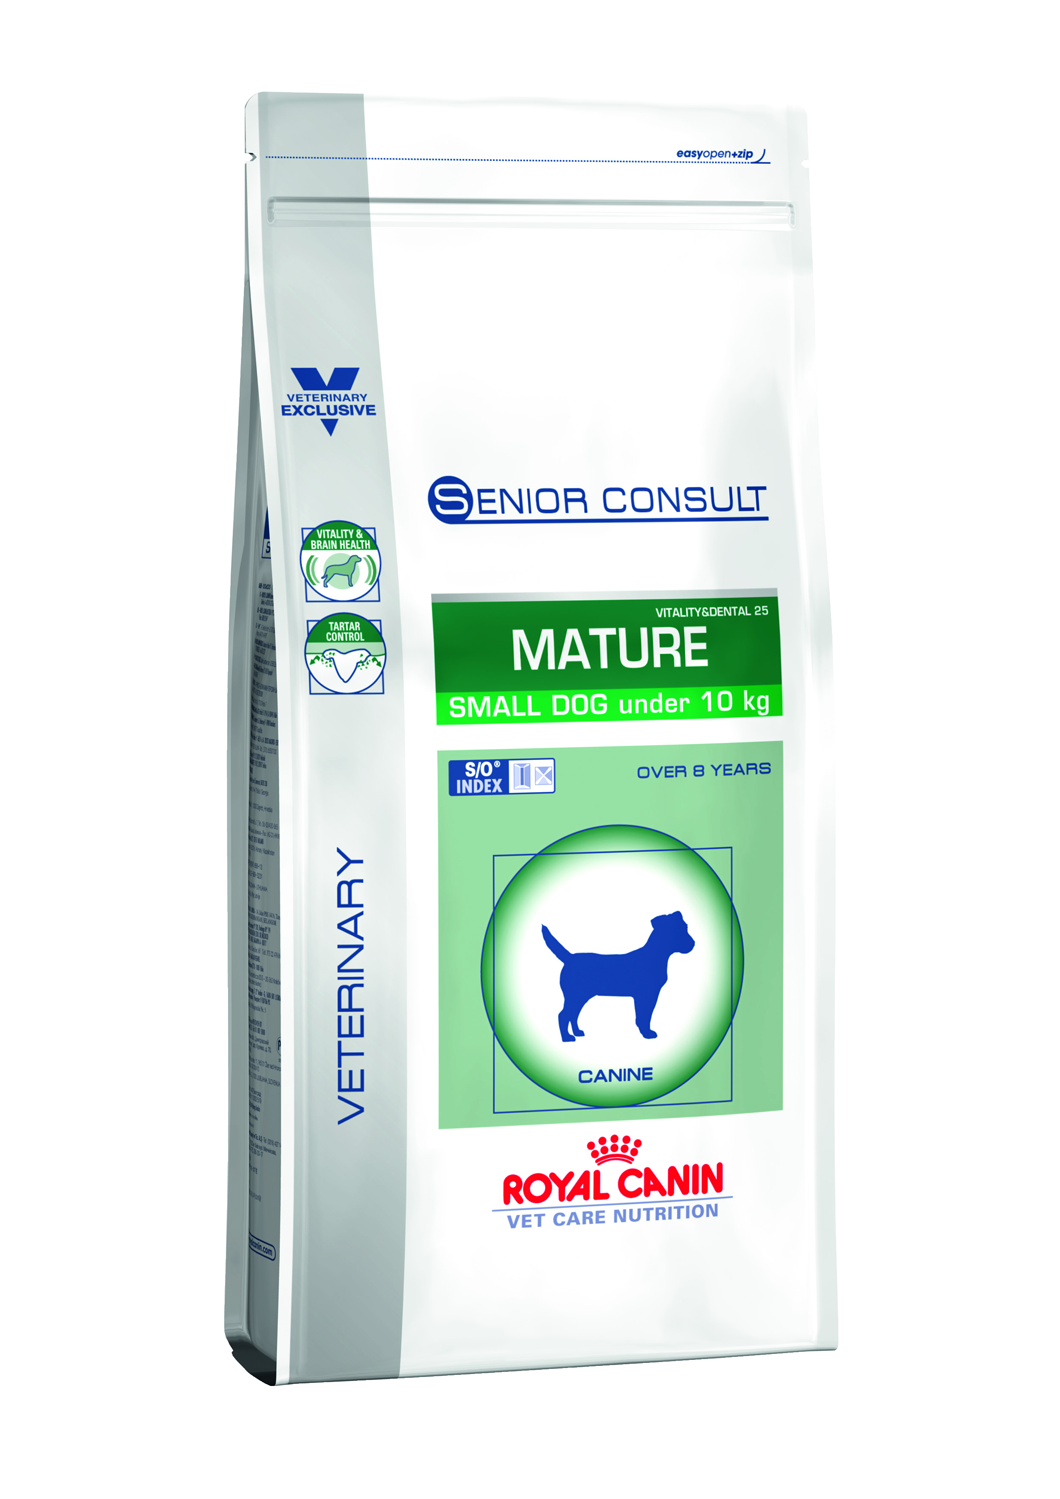 VCN SC MATURE SMALL DOG